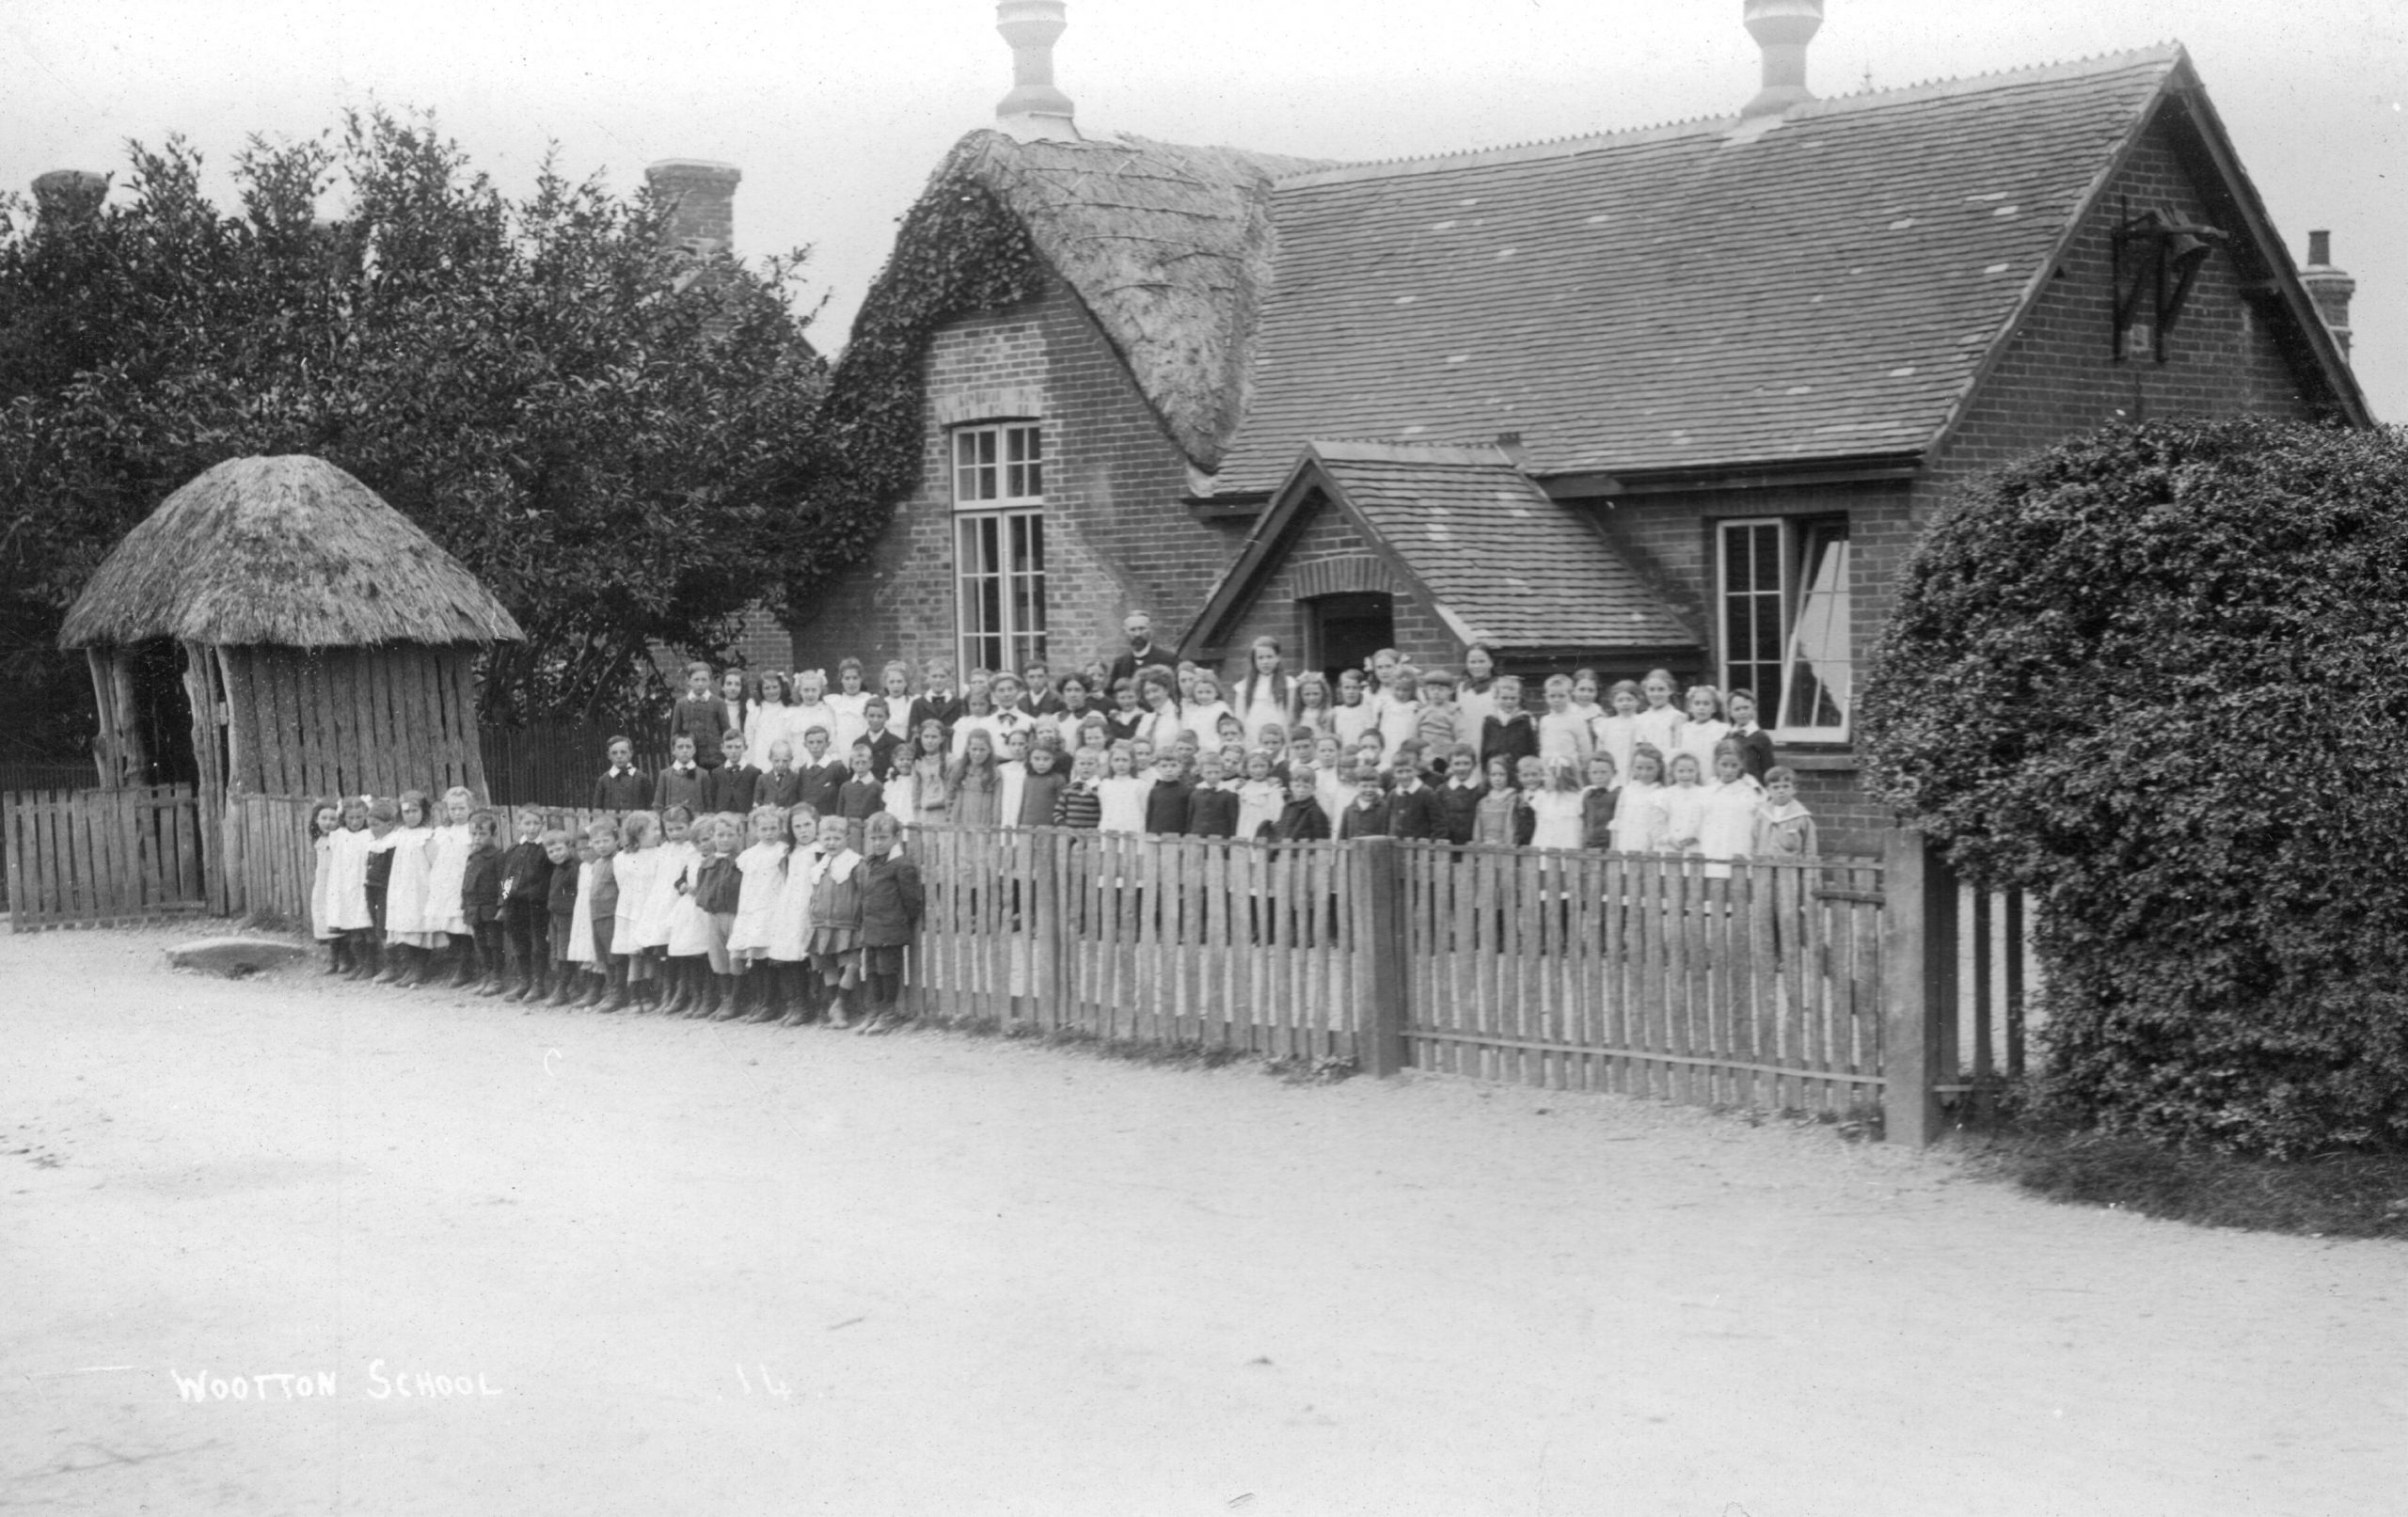 I:\New Milton Photographs and History\Wotton\Article for publication\Photo 3Wootton School Tony Johnson Collection.jpg